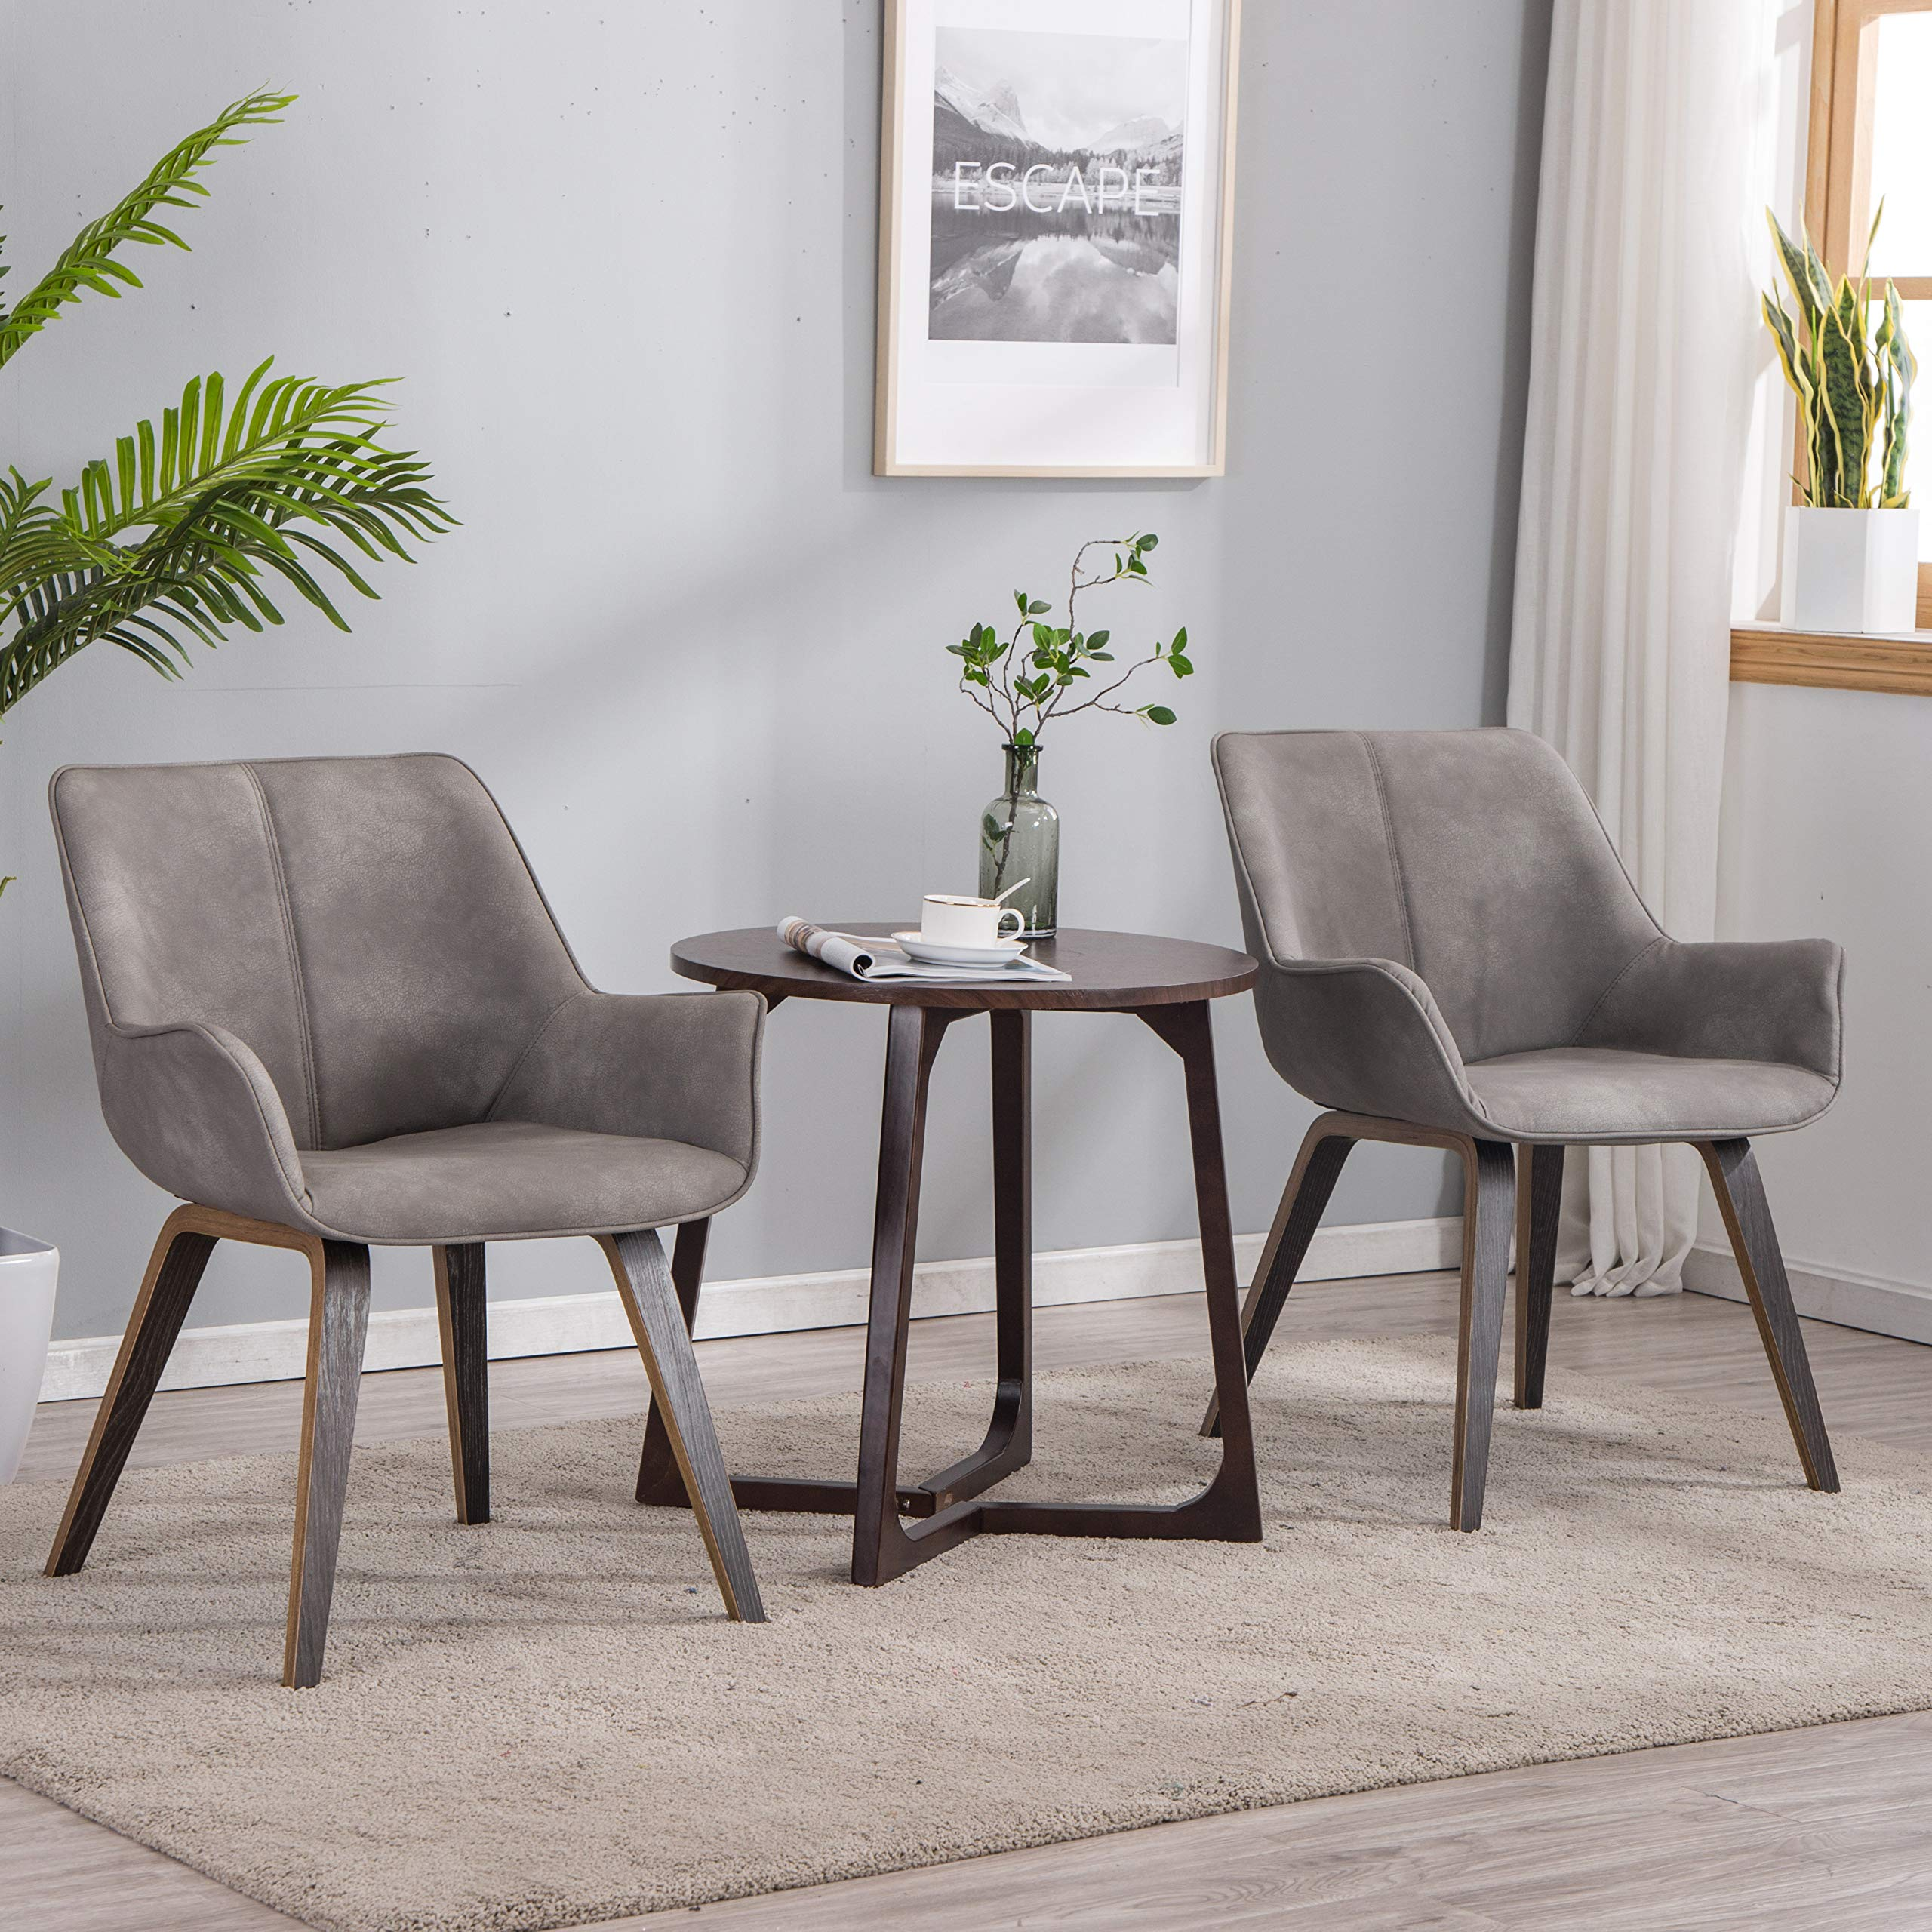 YEEFY Real Leather Dining Chairs Set of 4 Dining Chairs (Ashen) by YEEFY (Image #1)